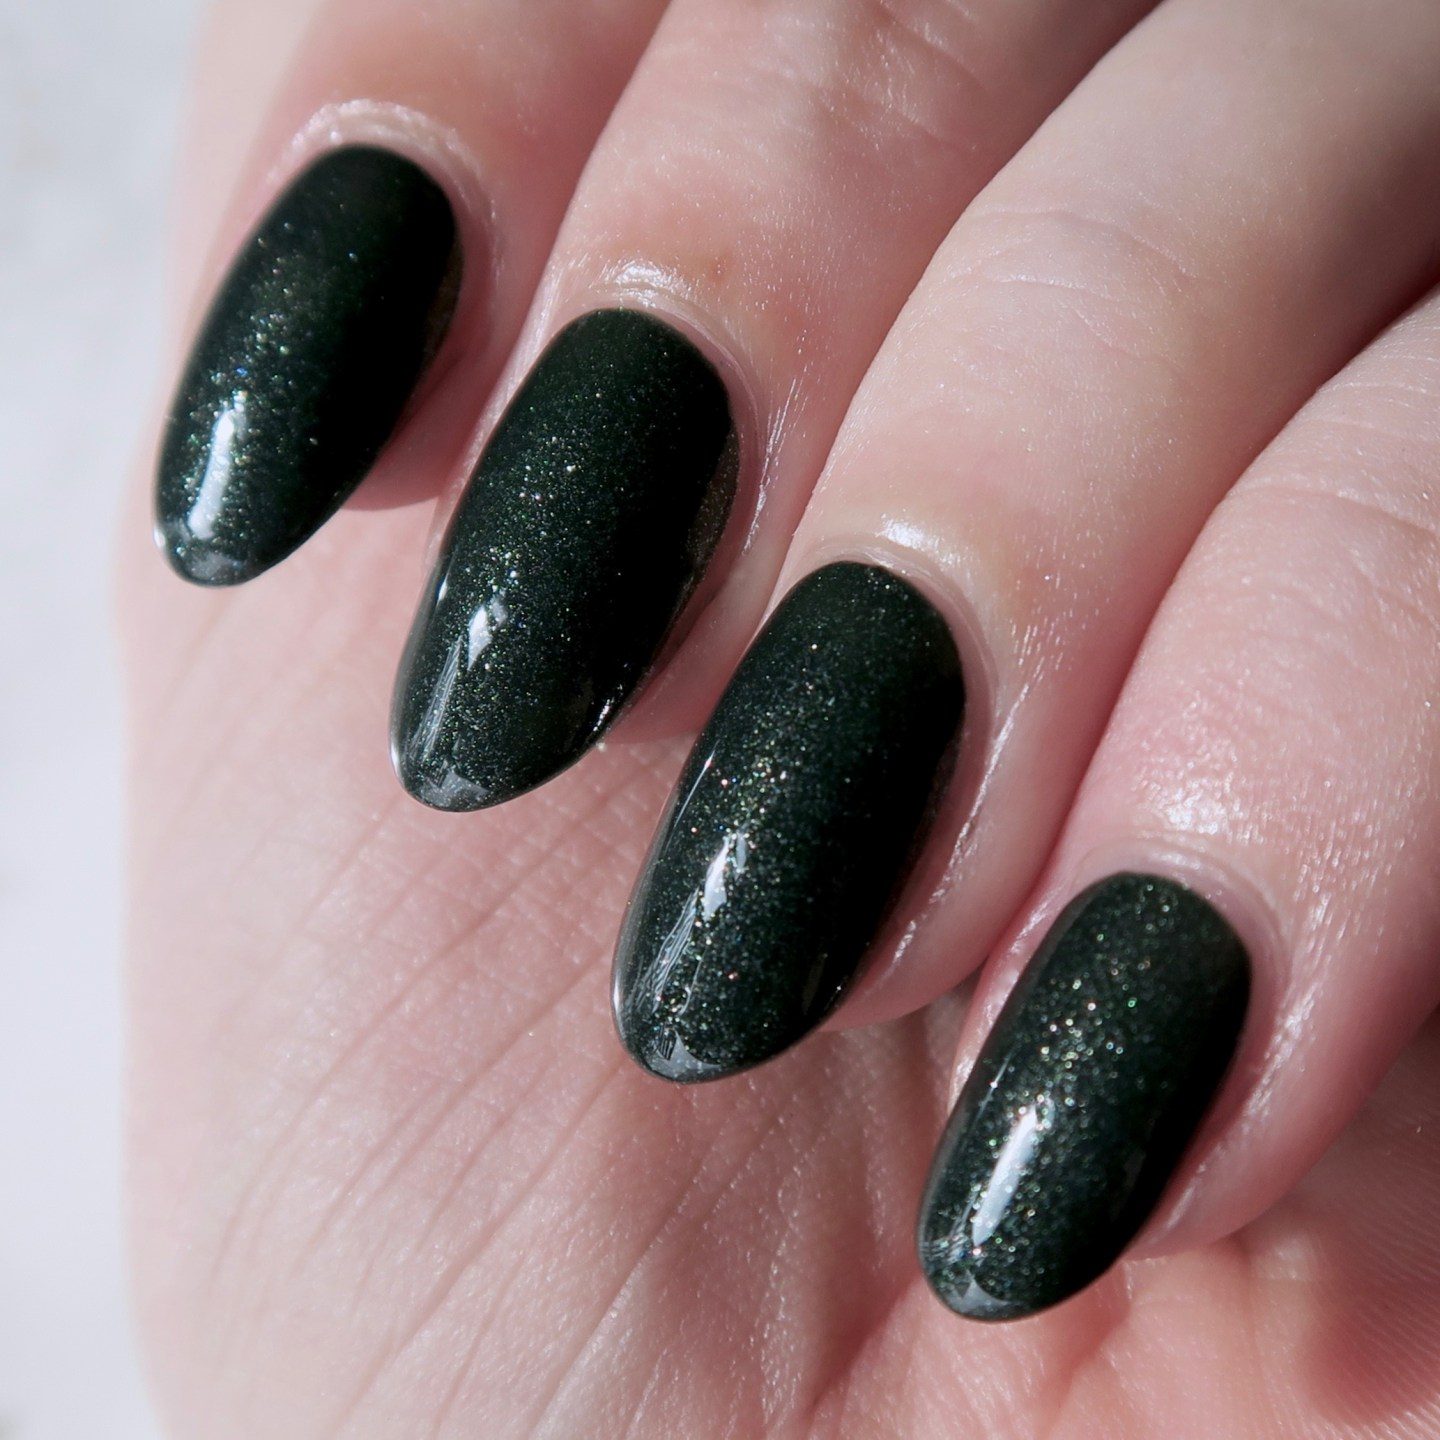 Essie x Rebecca Minkoff Leathers Collection 'Back In The Saddle' (with topcoat)